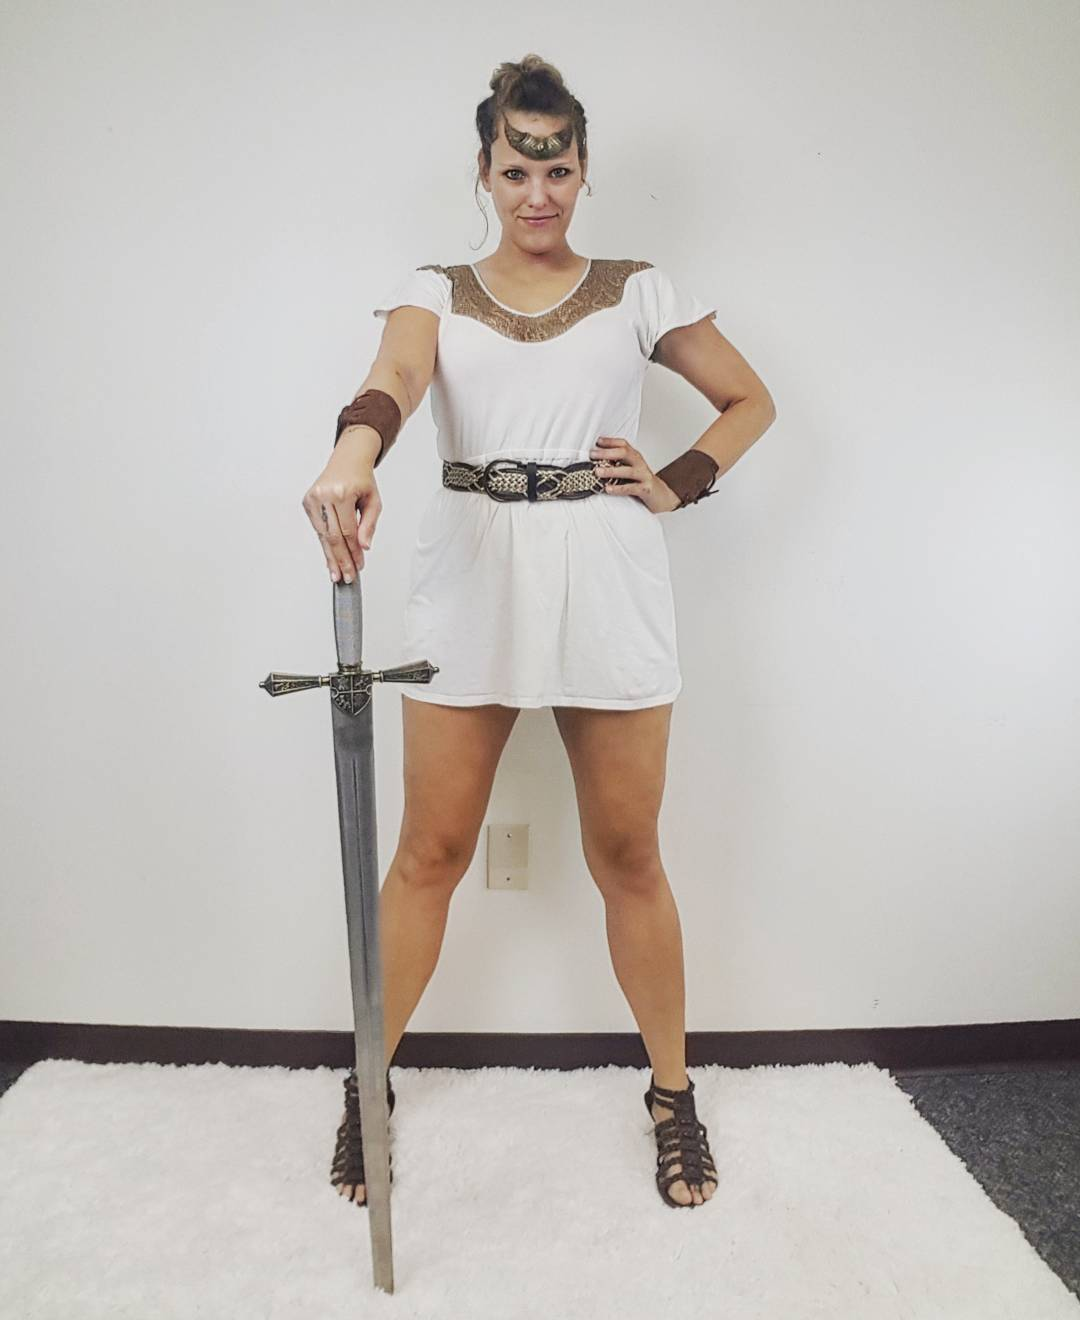 Thrift Store Cosplay Day 6 Amazon of Themyscira Wonder Woman fashion blog post DC Comics